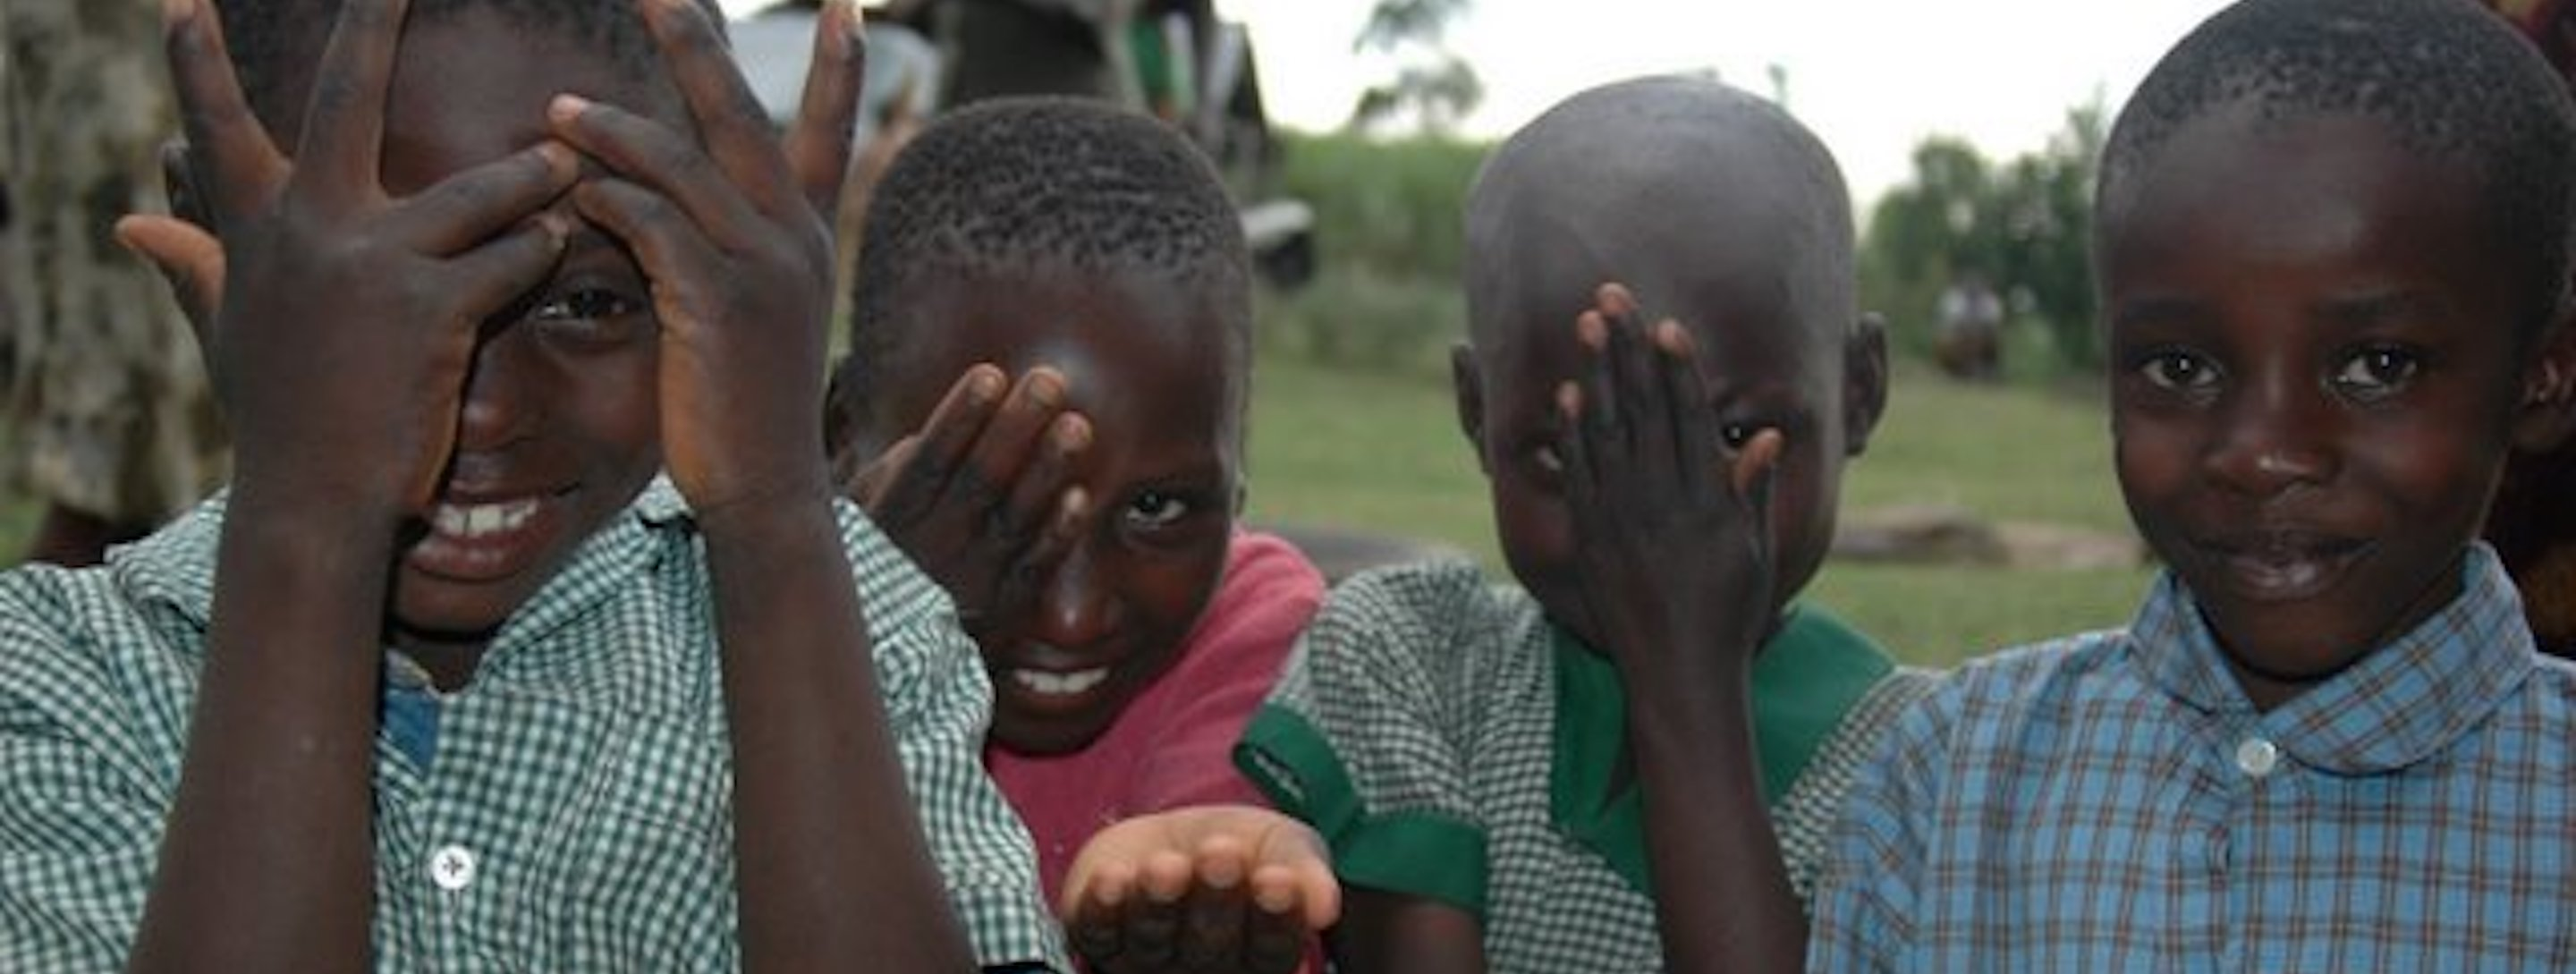 young kenyan children playing